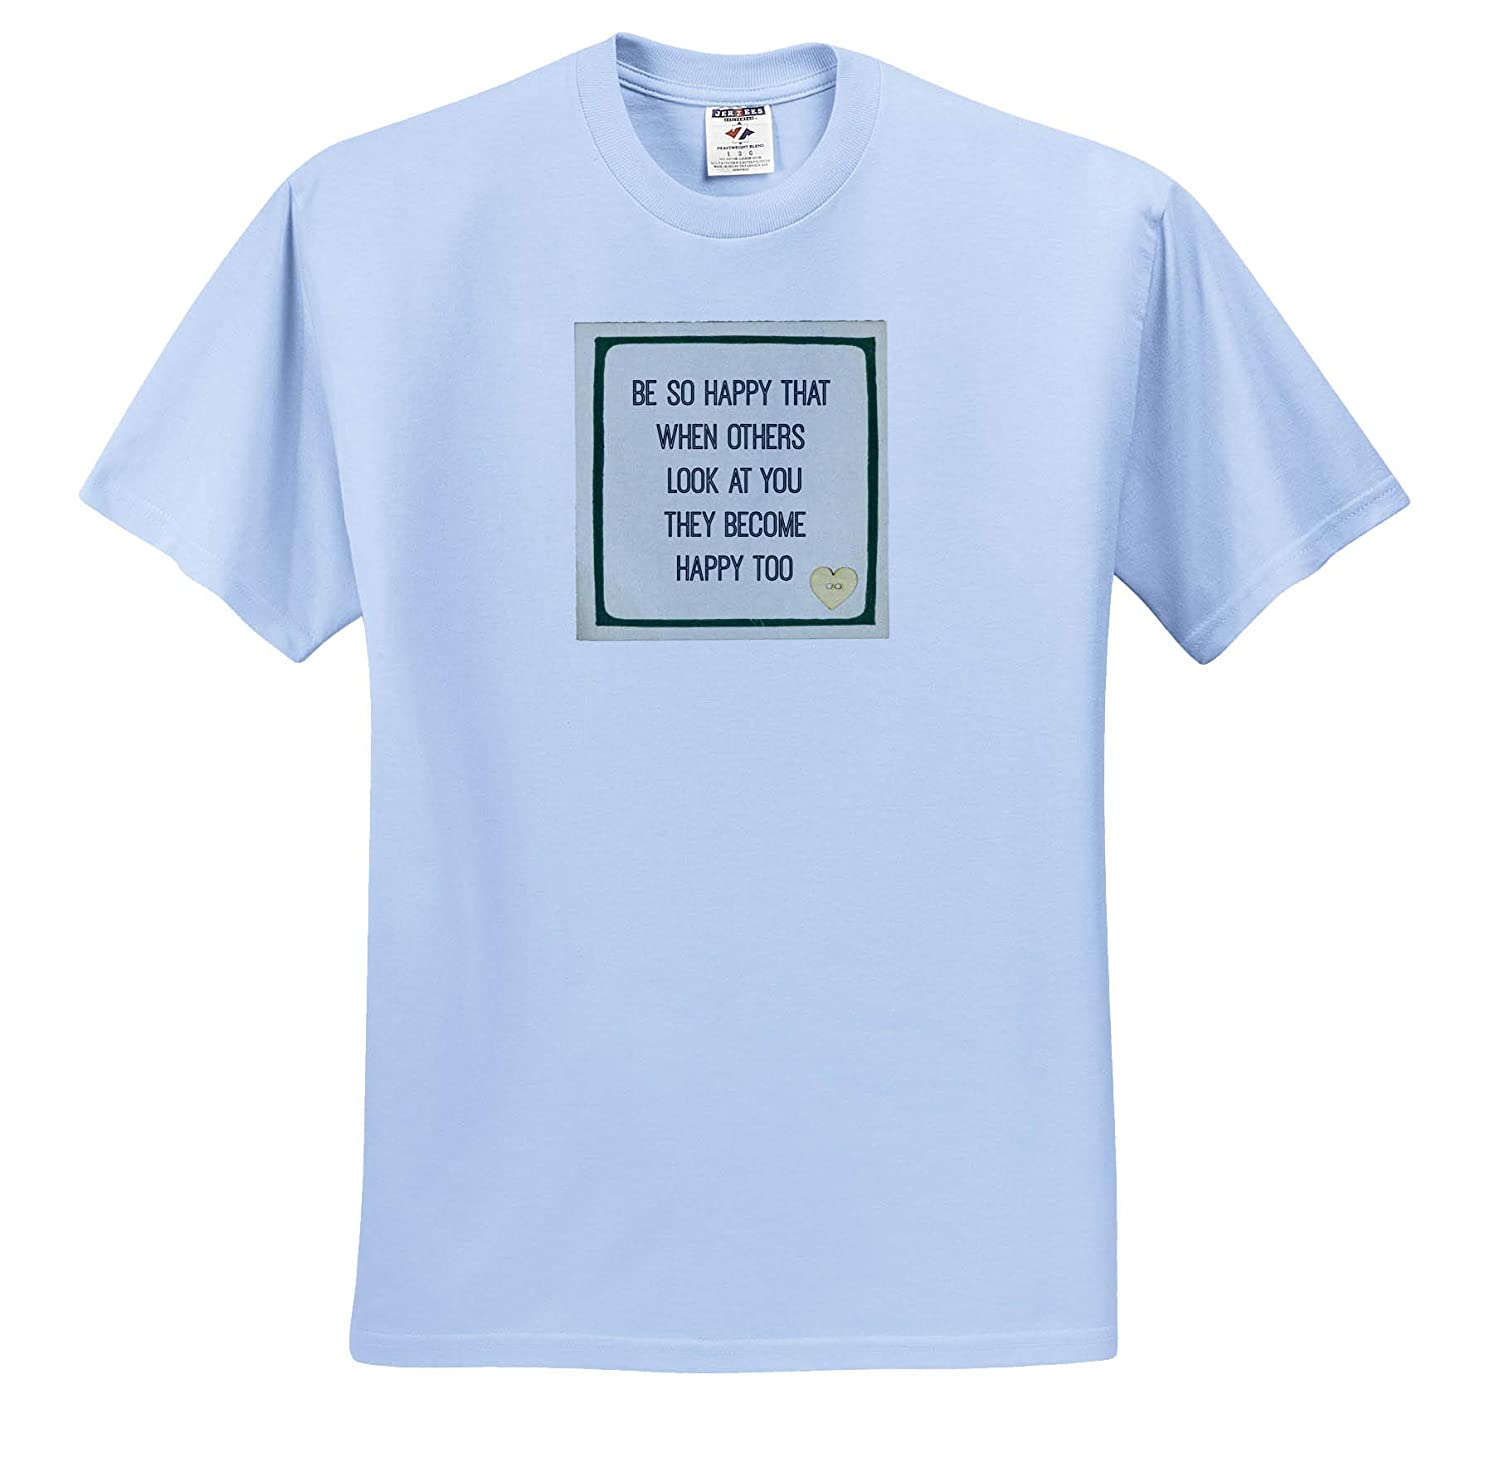 Quote Adult T-Shirt XL Image of Be So Happy That When Others Look at You They Become ts/_309508 3dRose Nicole R